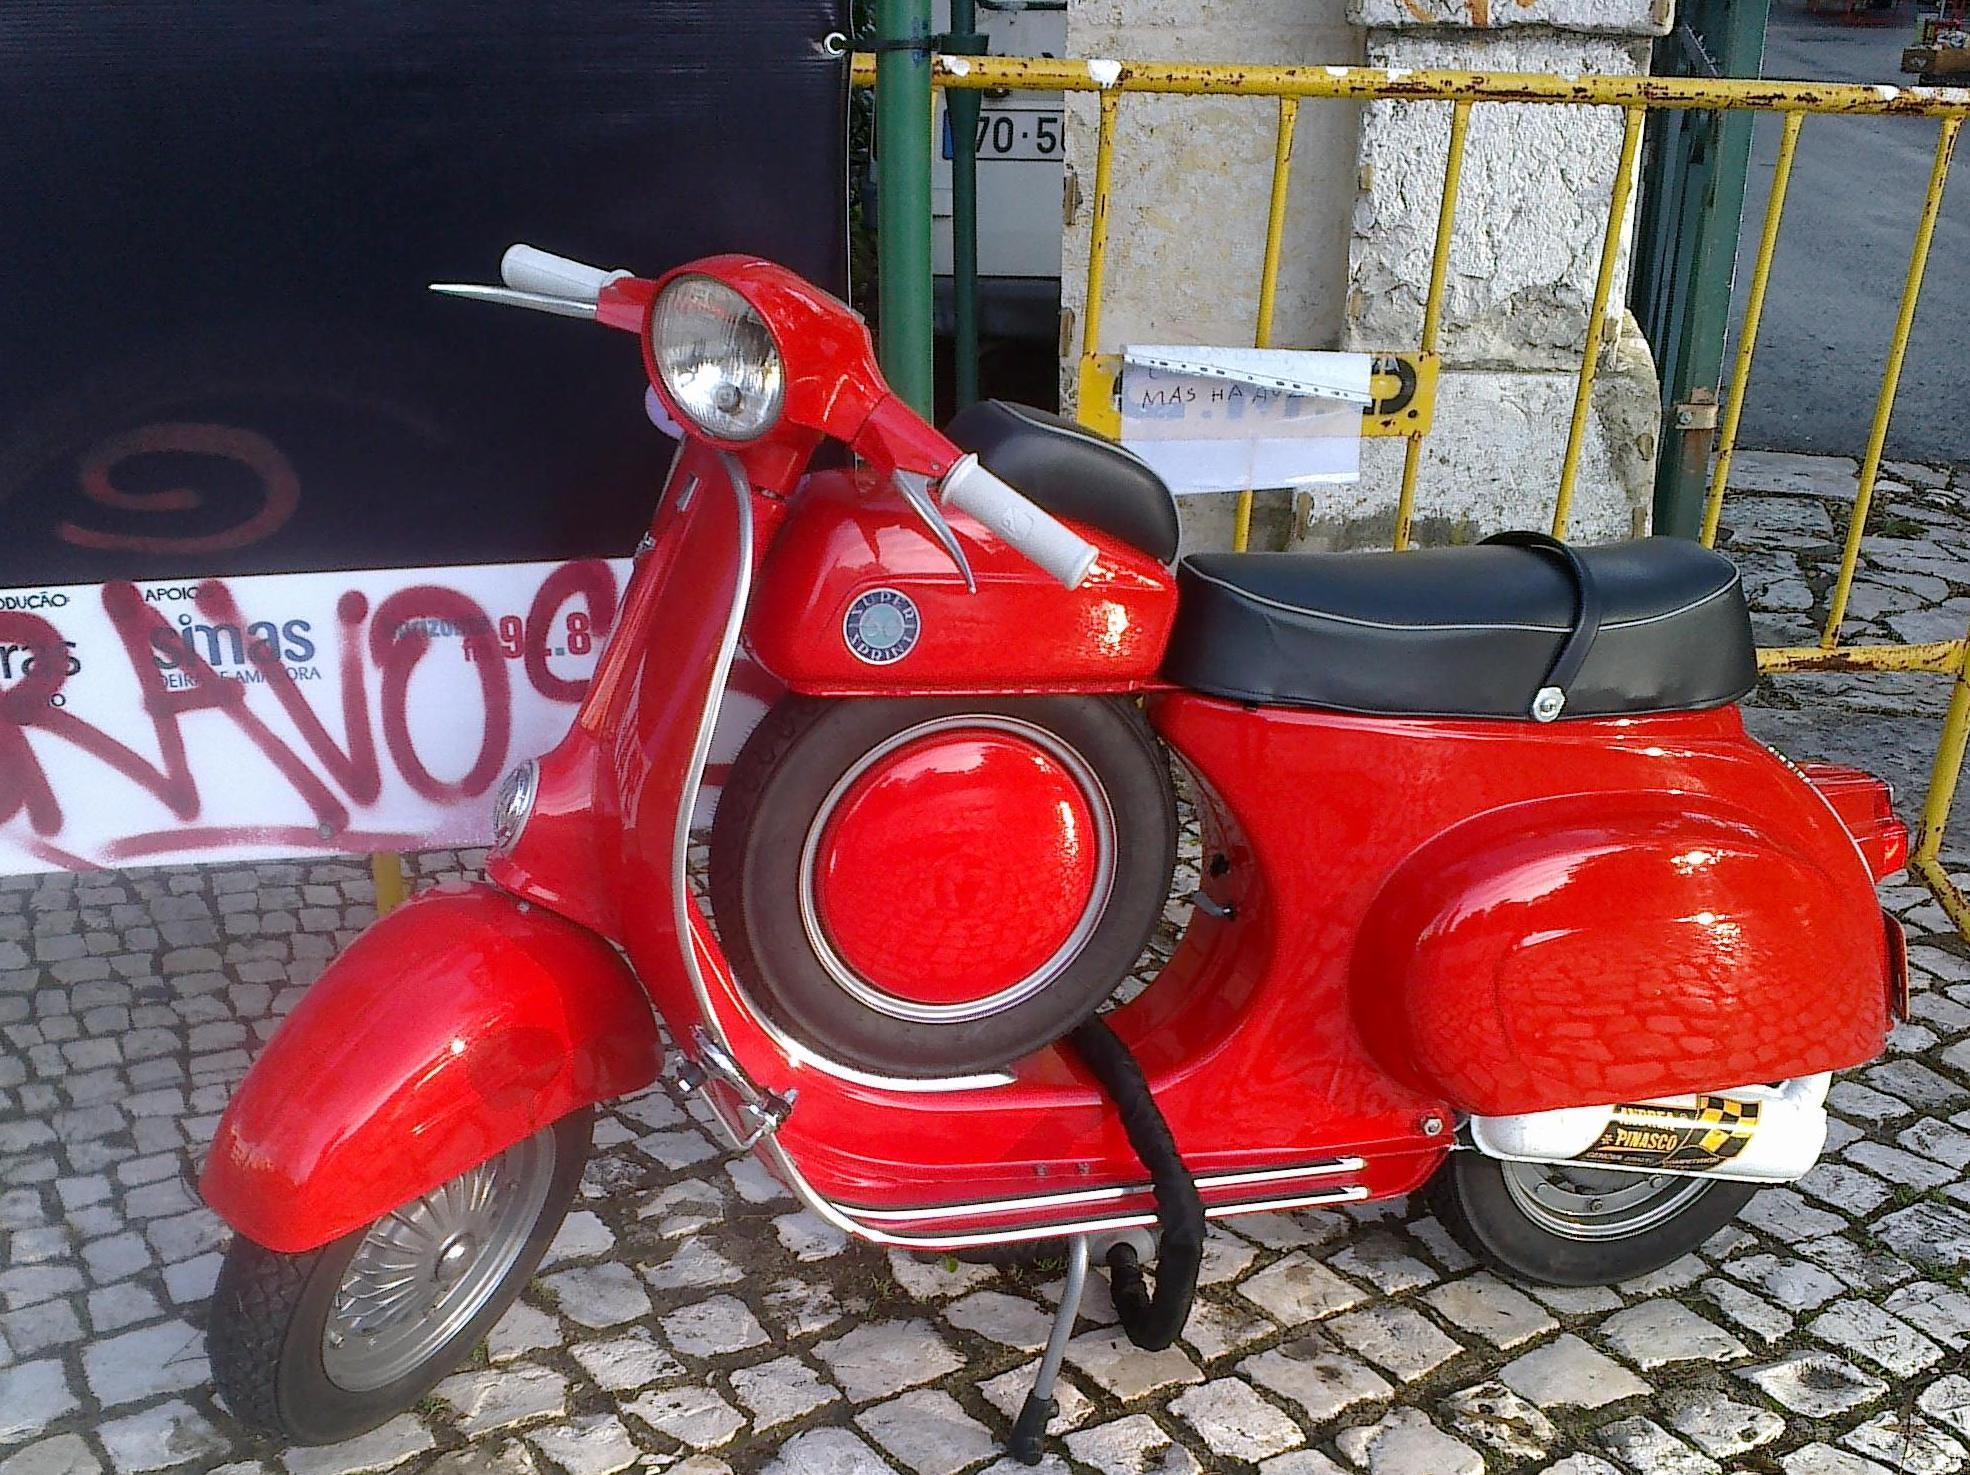 VespaSuperSprint50